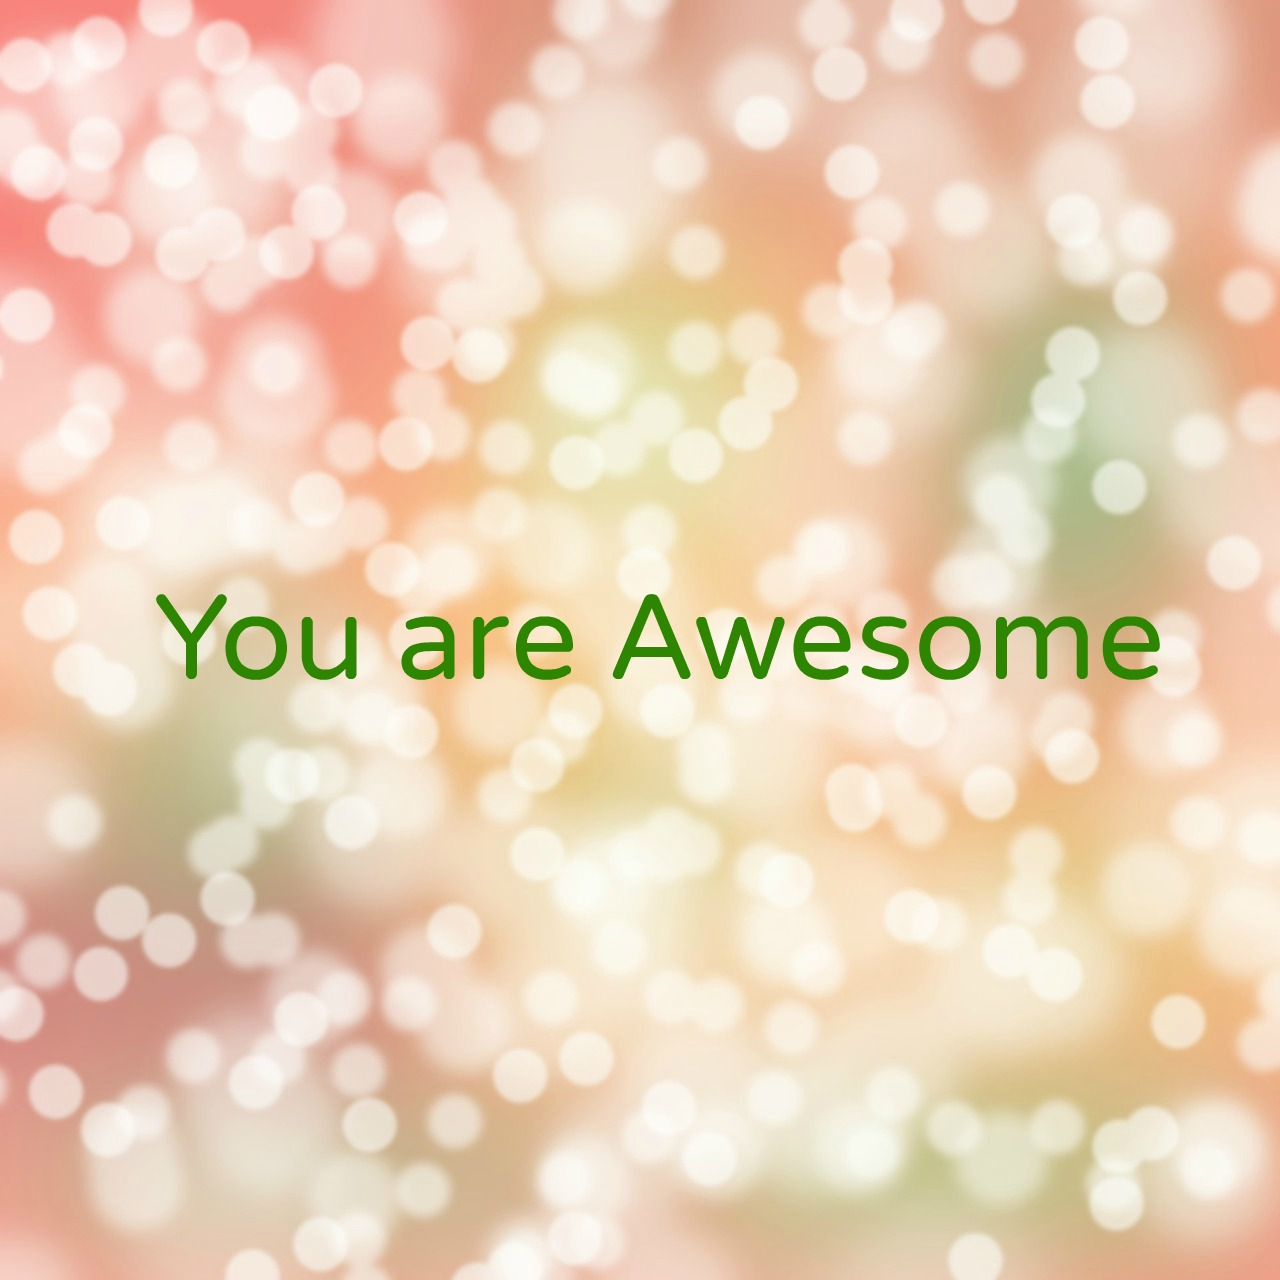 You are Awesome graphic